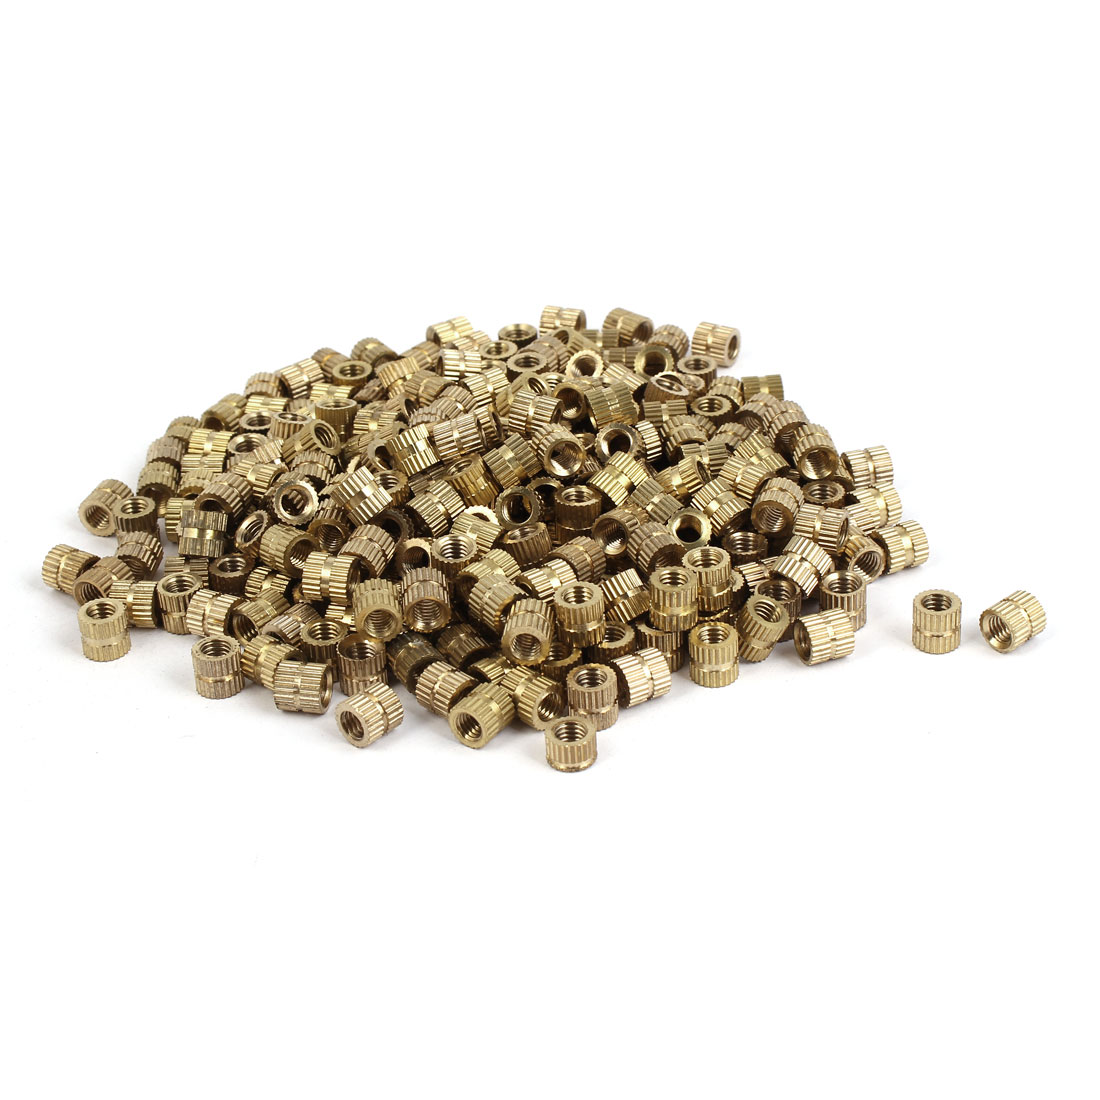 M5 x 7mm x 7.3mm Brass Cylinder Injection Molding Knurled Insert Nuts 500PCS